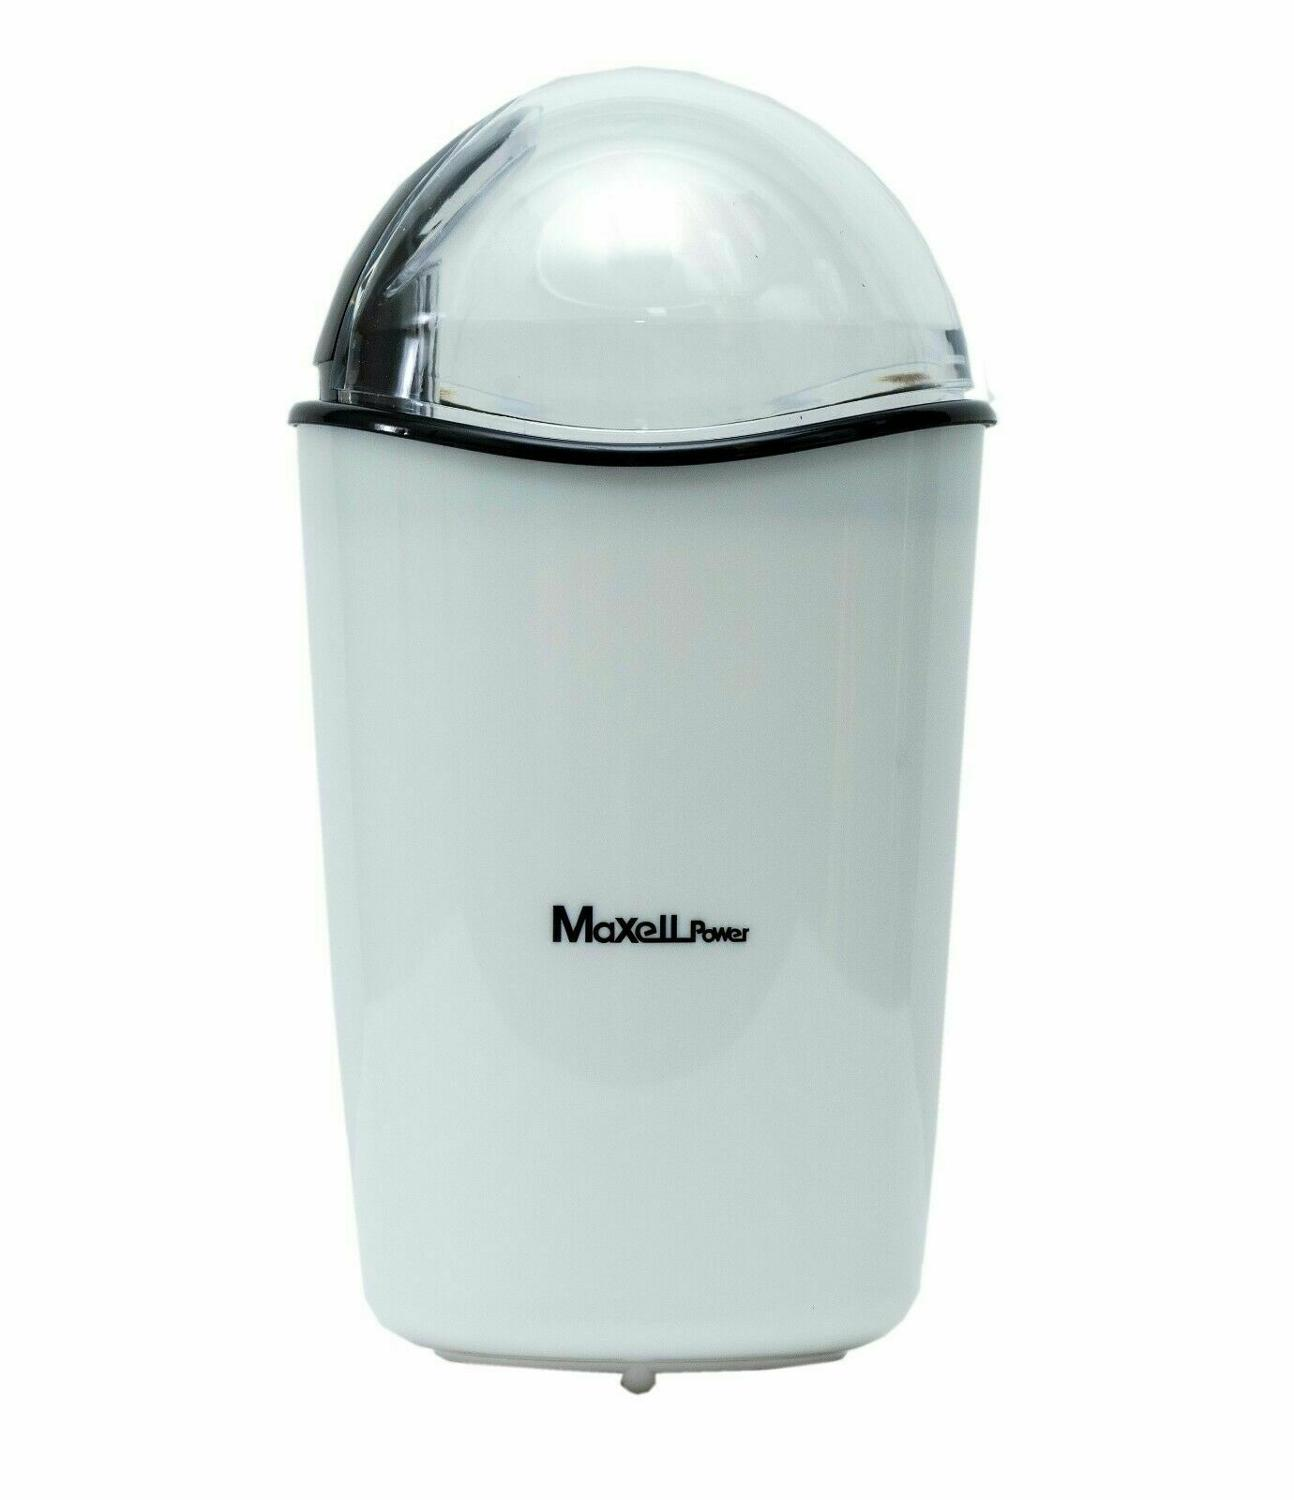 COFFEE GRINDER 200W 50G GRINDER CAFE TOP QUALITY VIEW MODERN MP-MC4073